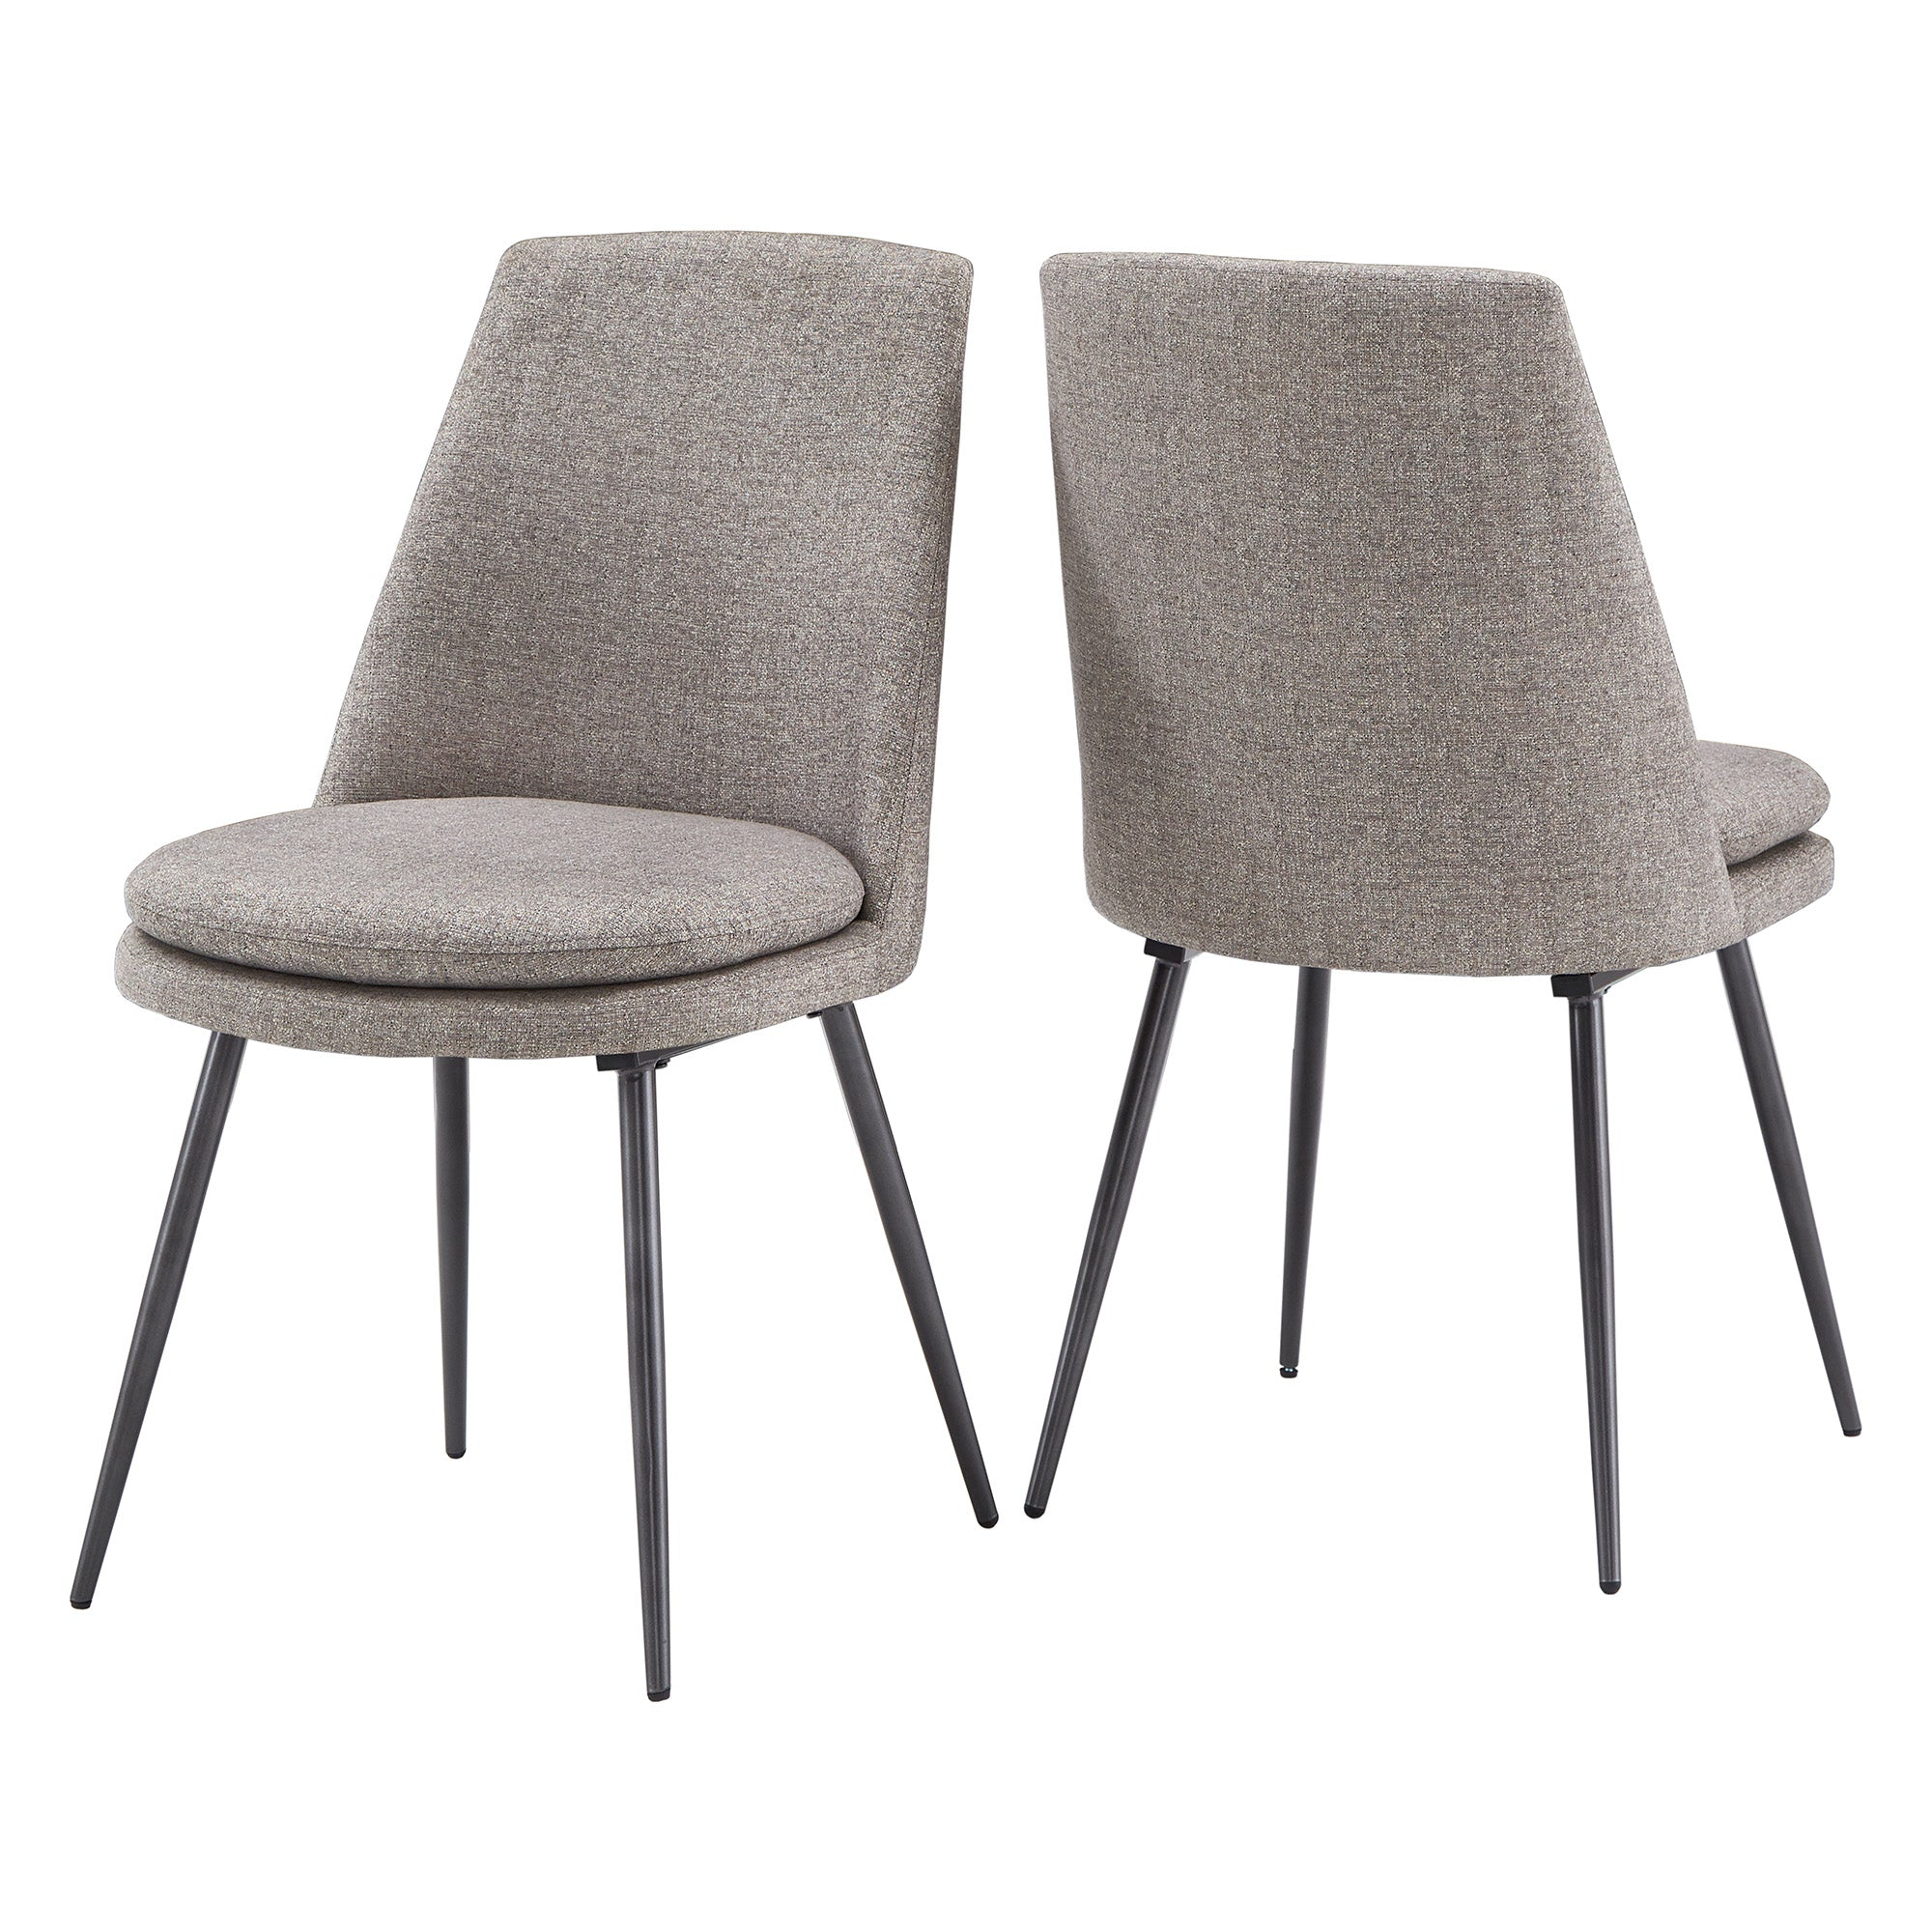 Chenille Fabric Dining Chairs (Set of 2) - Dark Grey